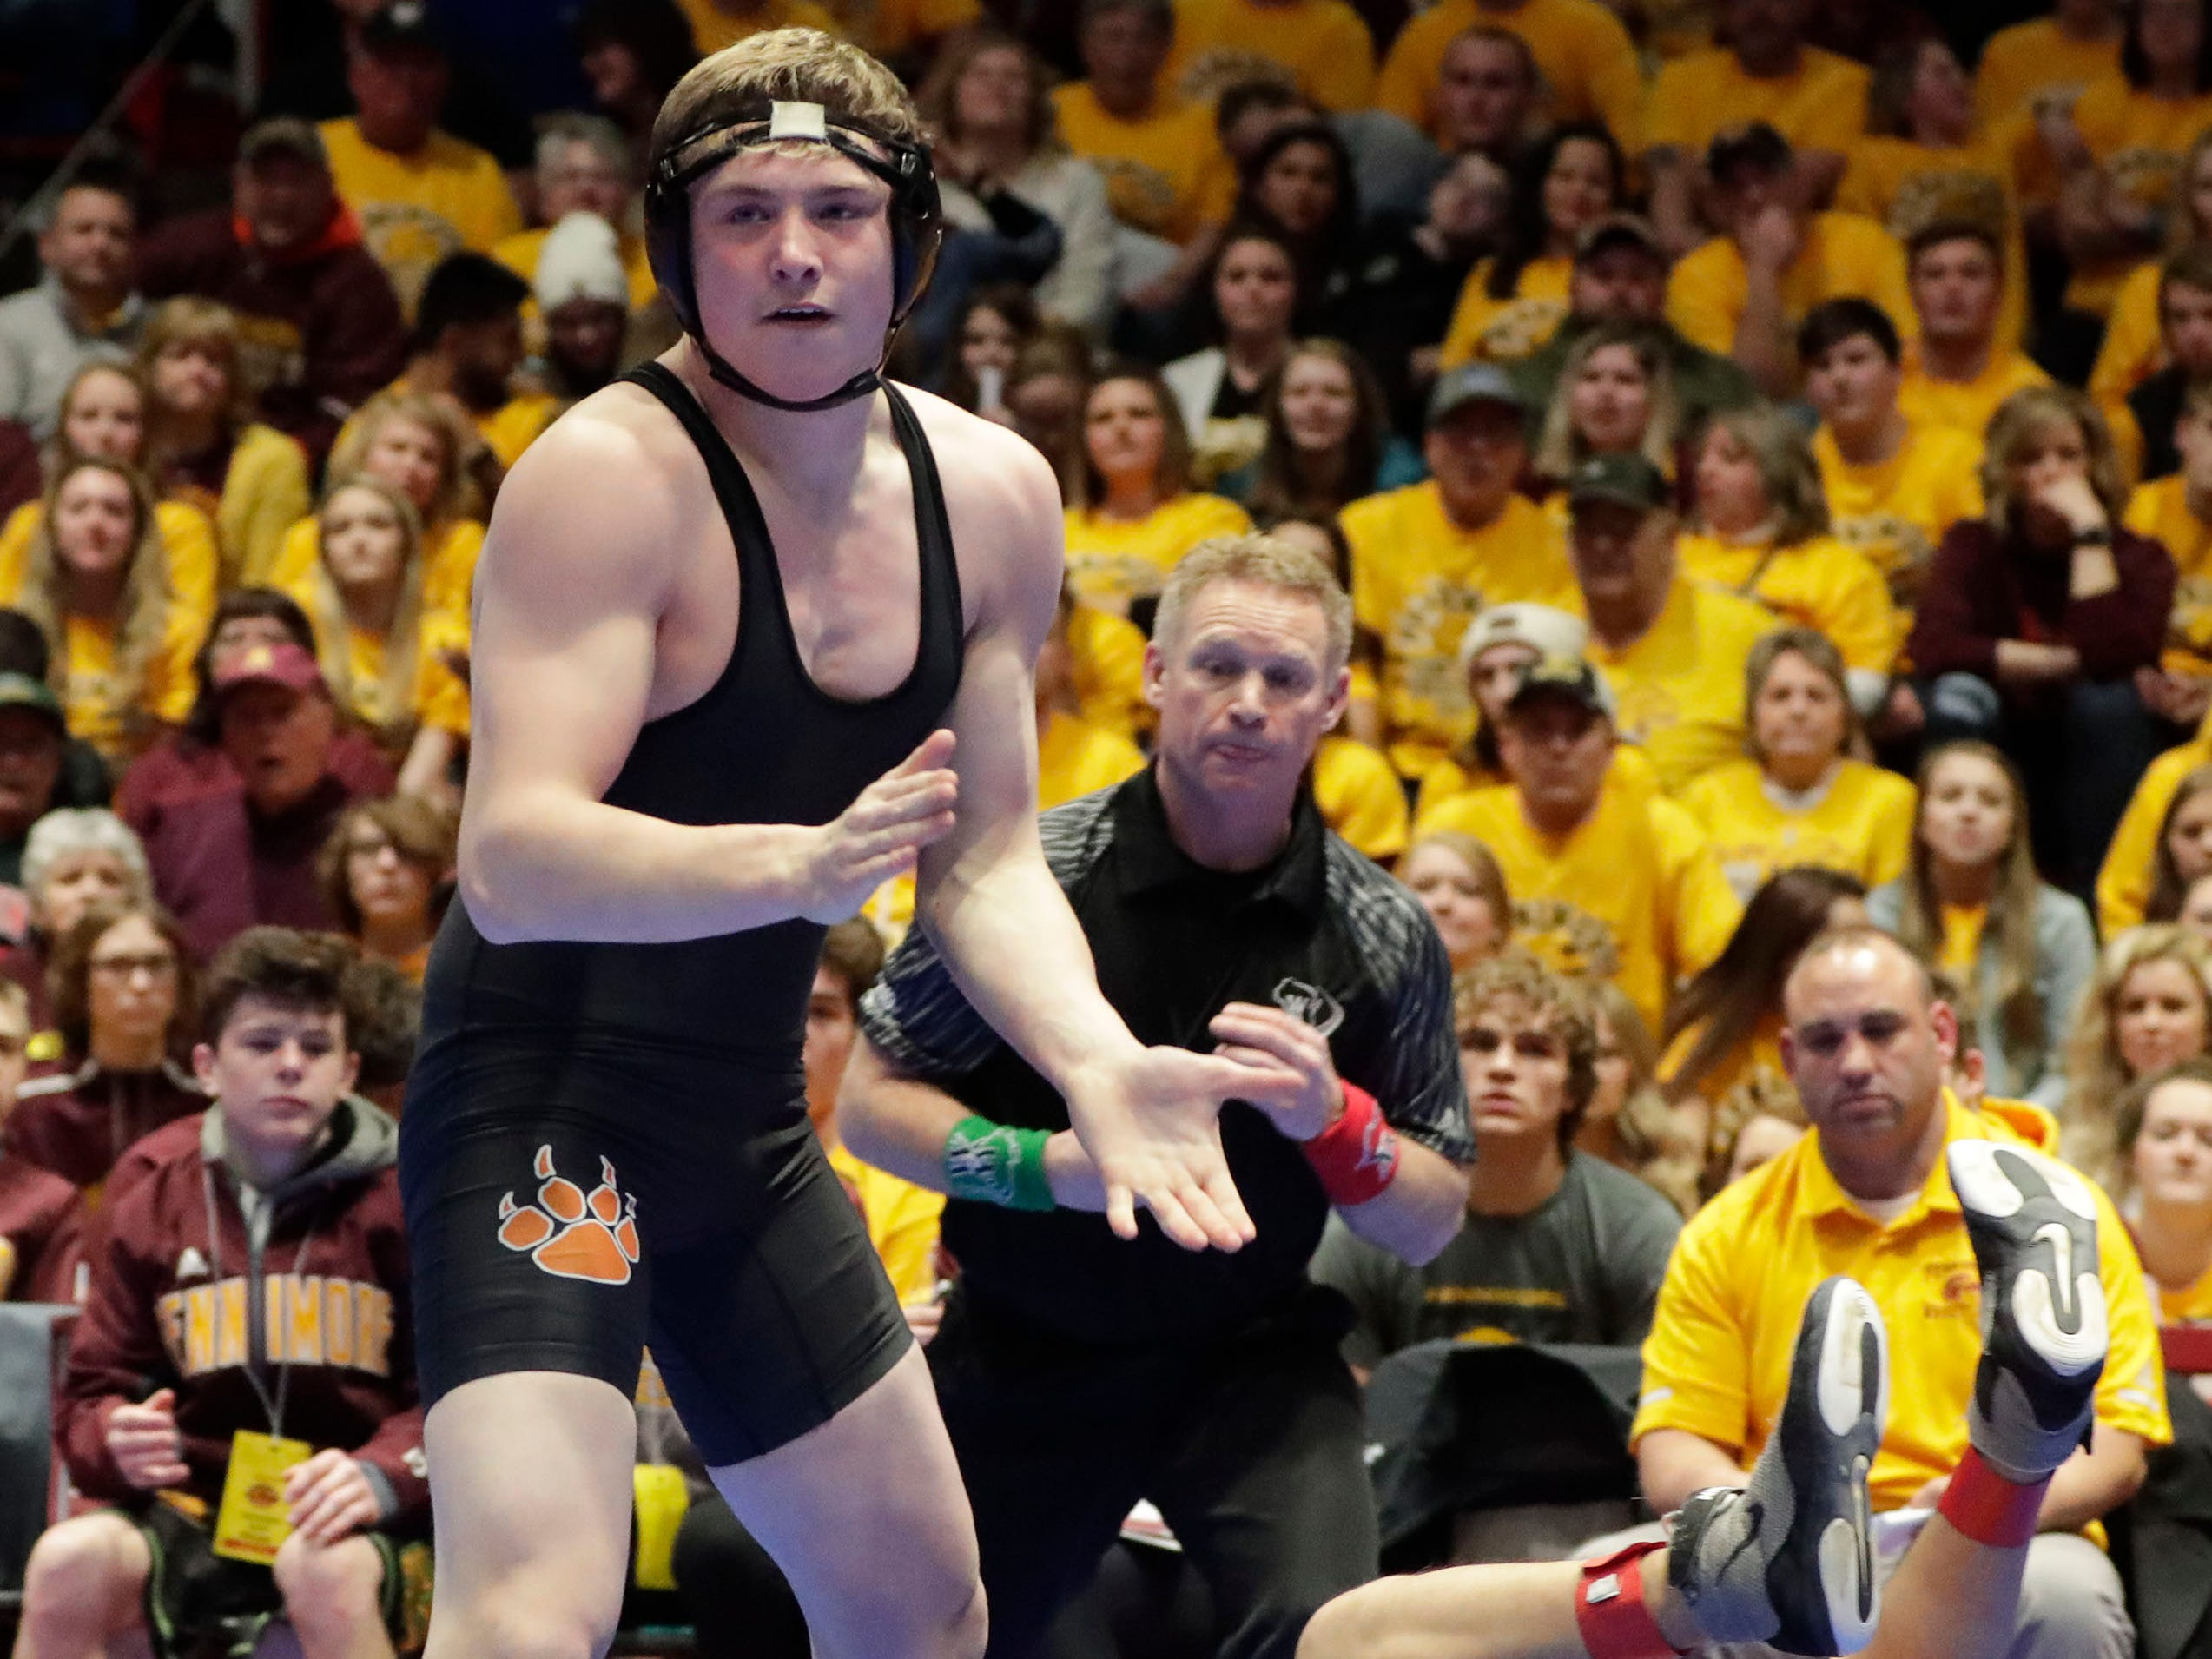 Stratford's Trevor Dennee, left, reacts to beating Fennimore's Atai Berdaliev in the 170-pound class, Saturday, March 2, 2019, in Madison, Wis.